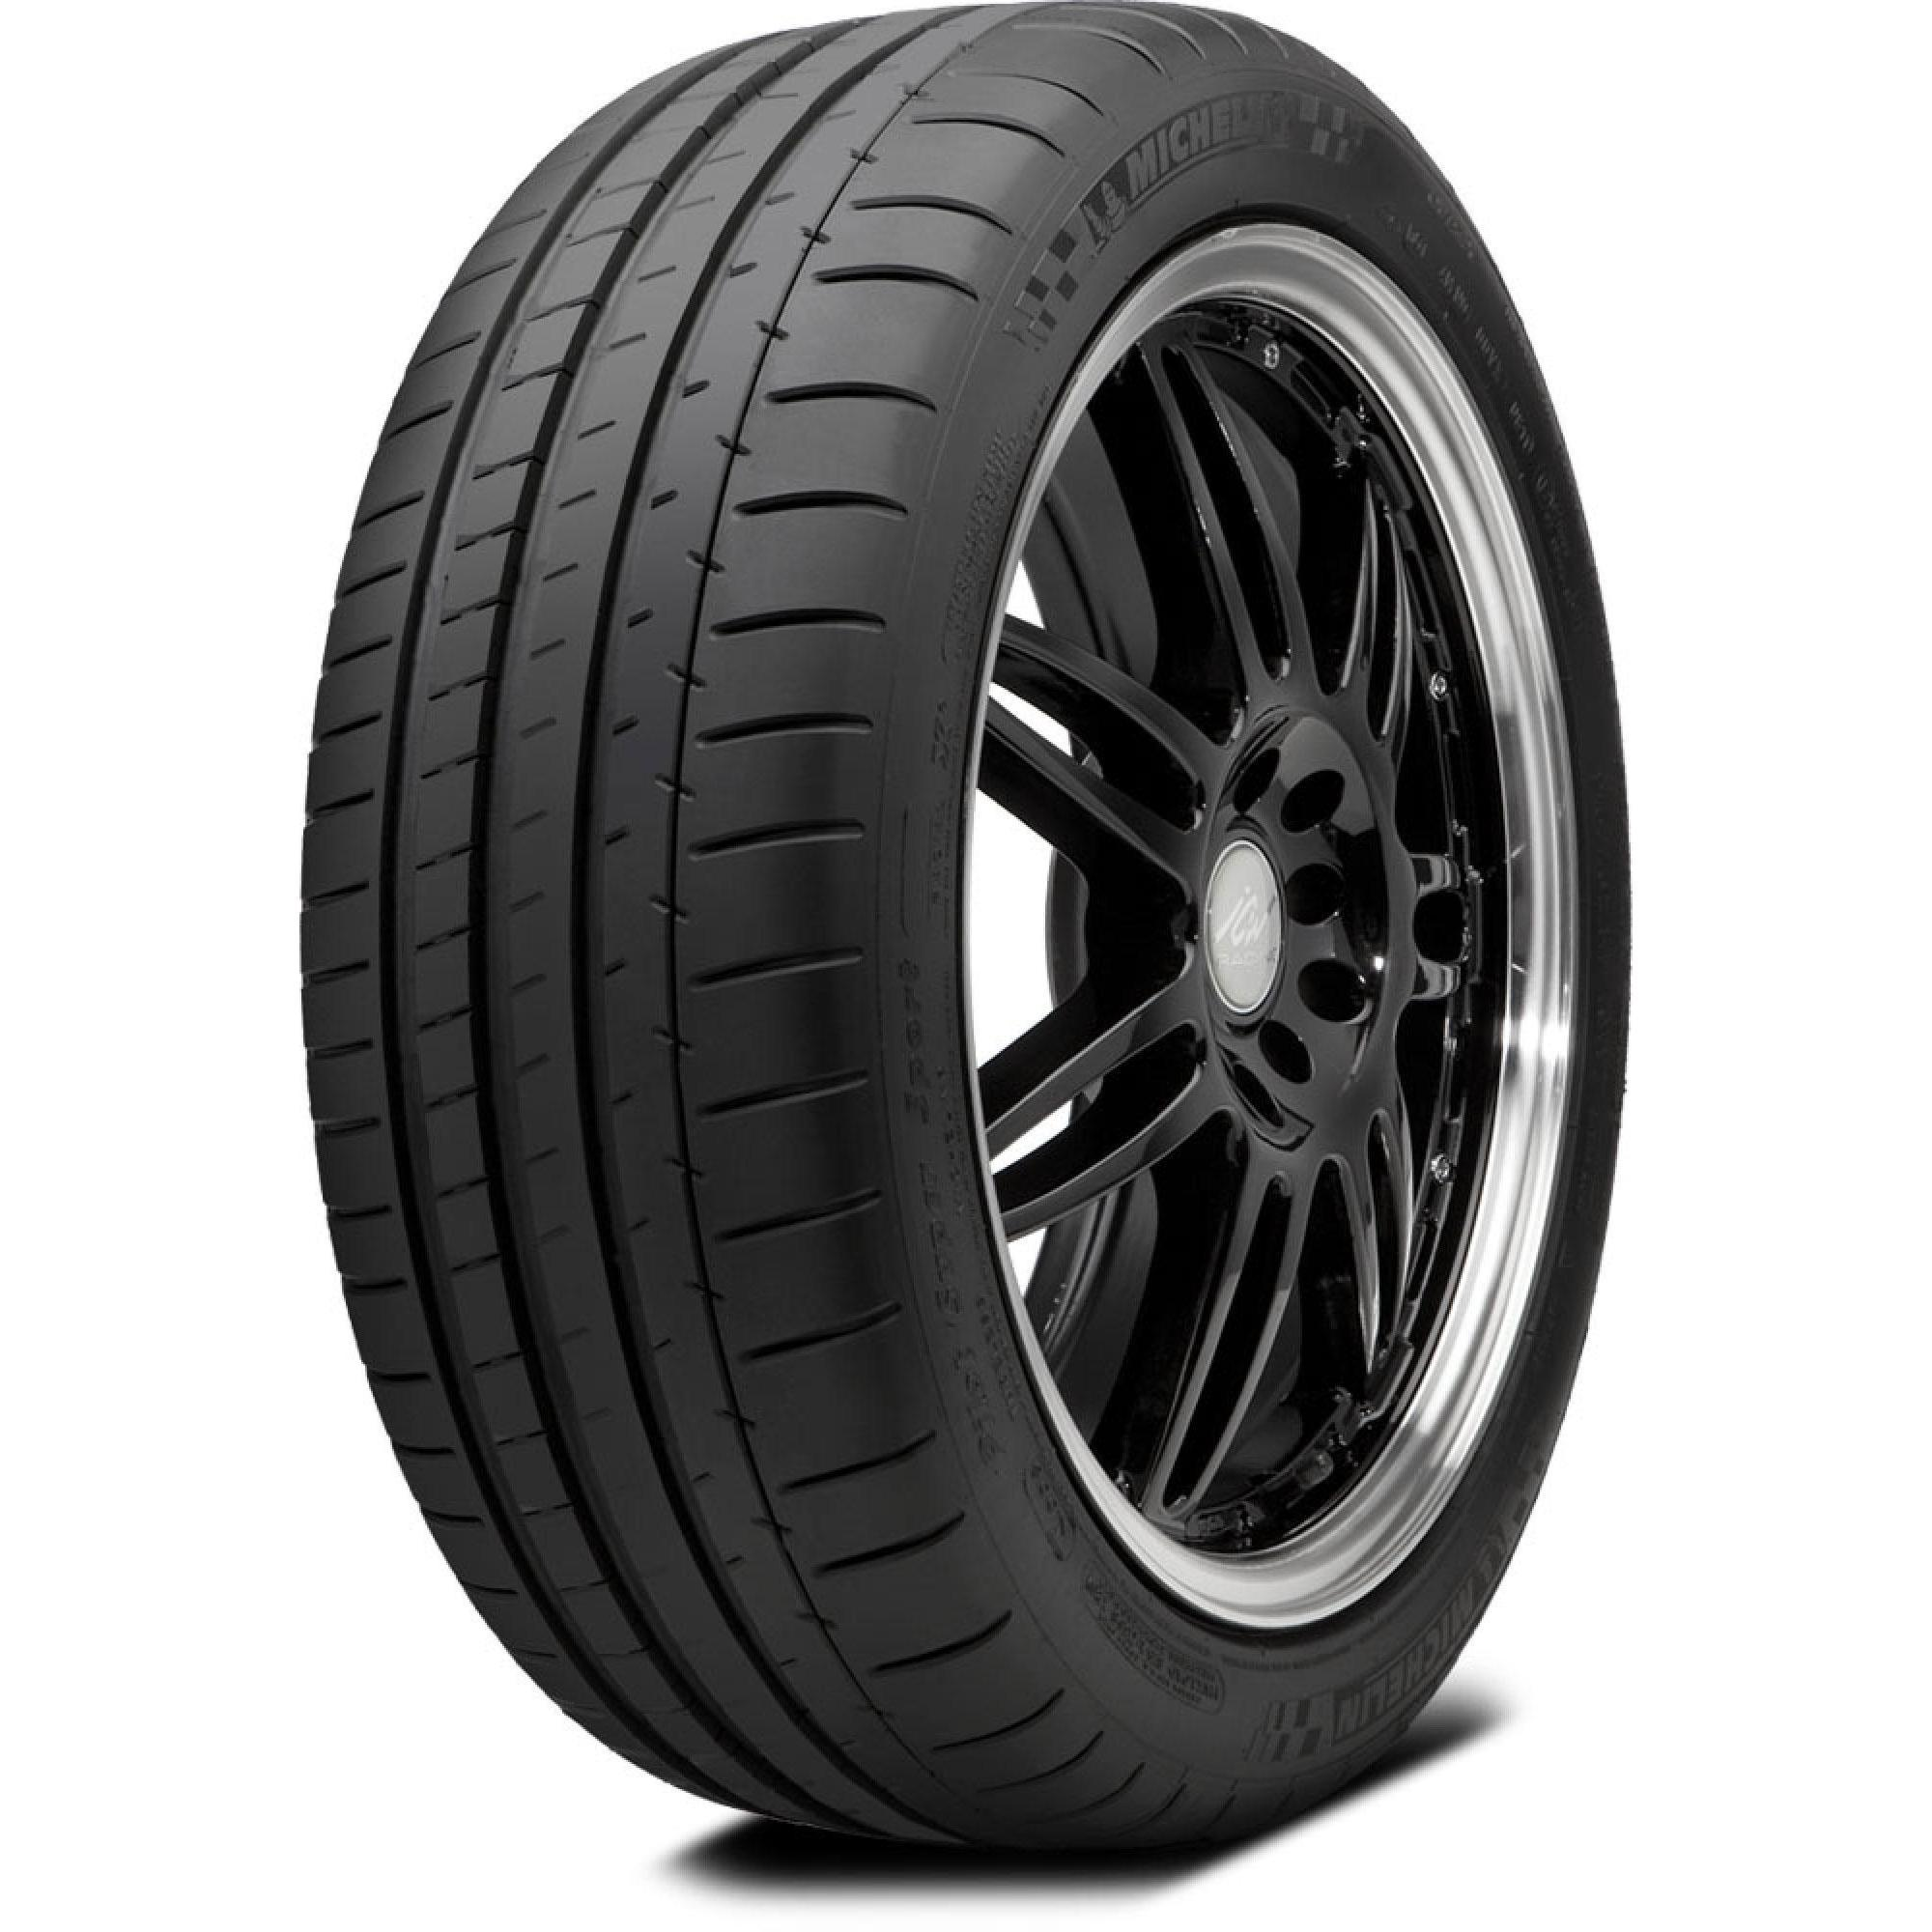 Llantas 255/40 R20  PILOT SUPER SPORT MICHELIN Origen china